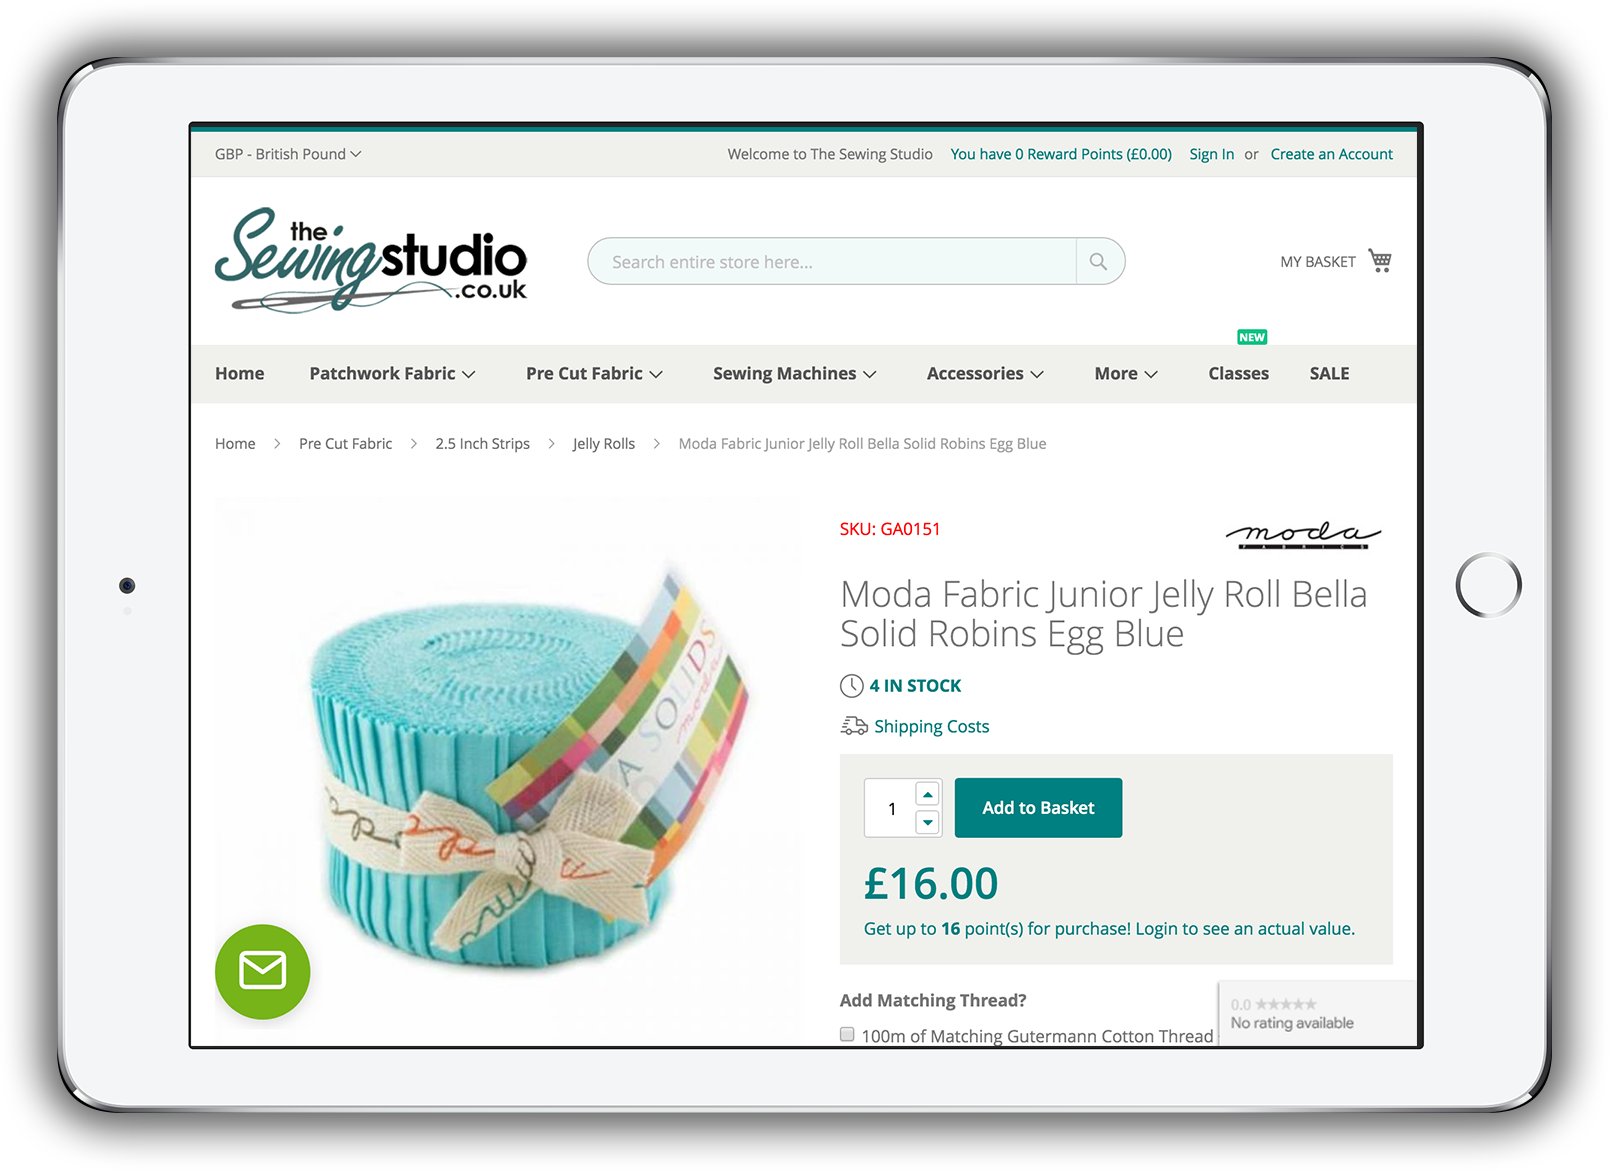 The Sewing Studio - Product Page